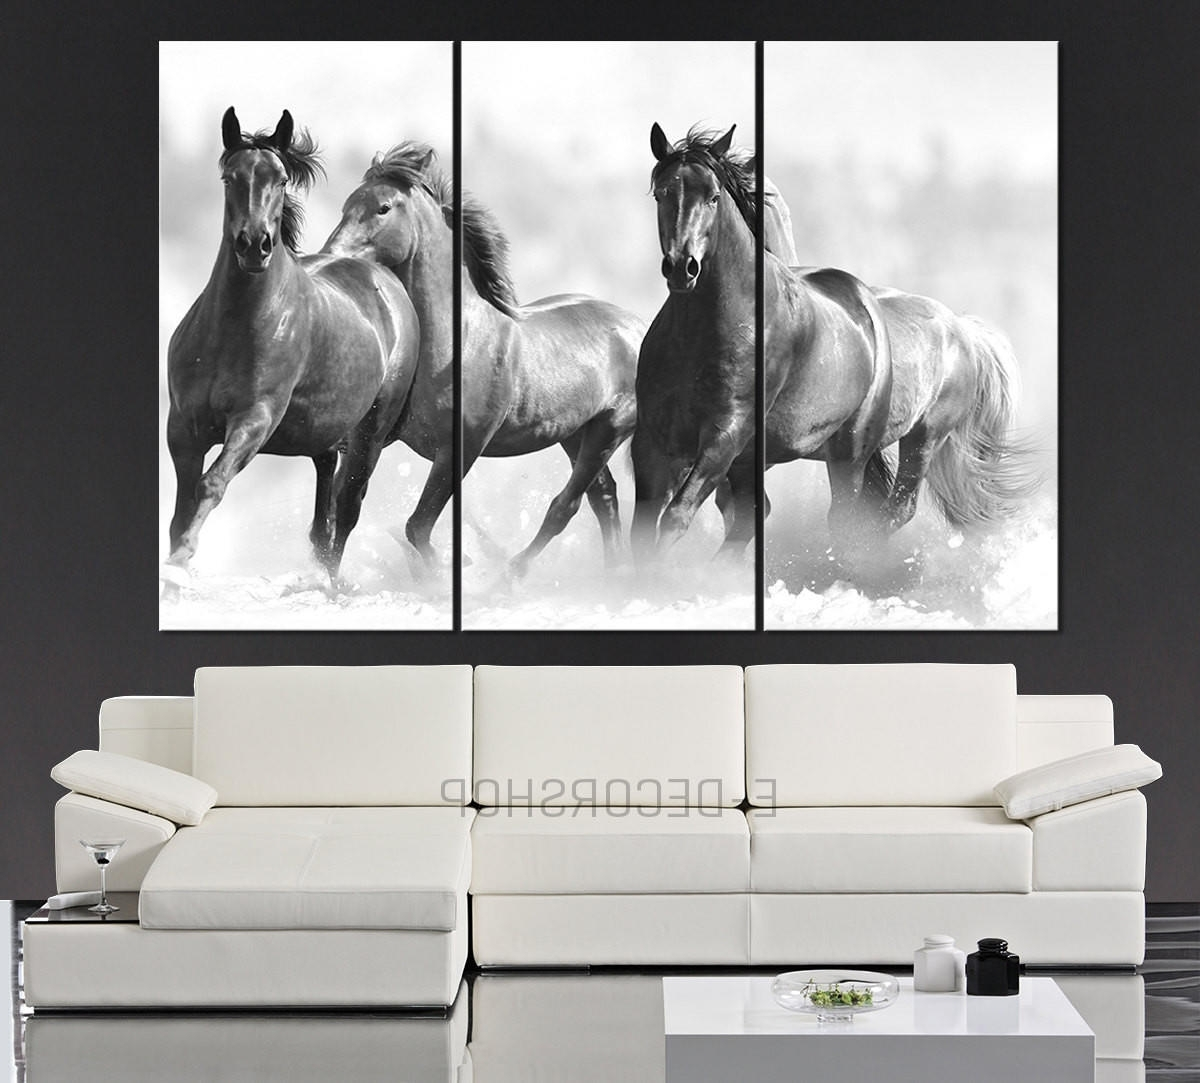 Large Wall Art Running Wild Horses Canvas From Mycanvasprint Within Widely Used Horses Wall Art (View 9 of 15)